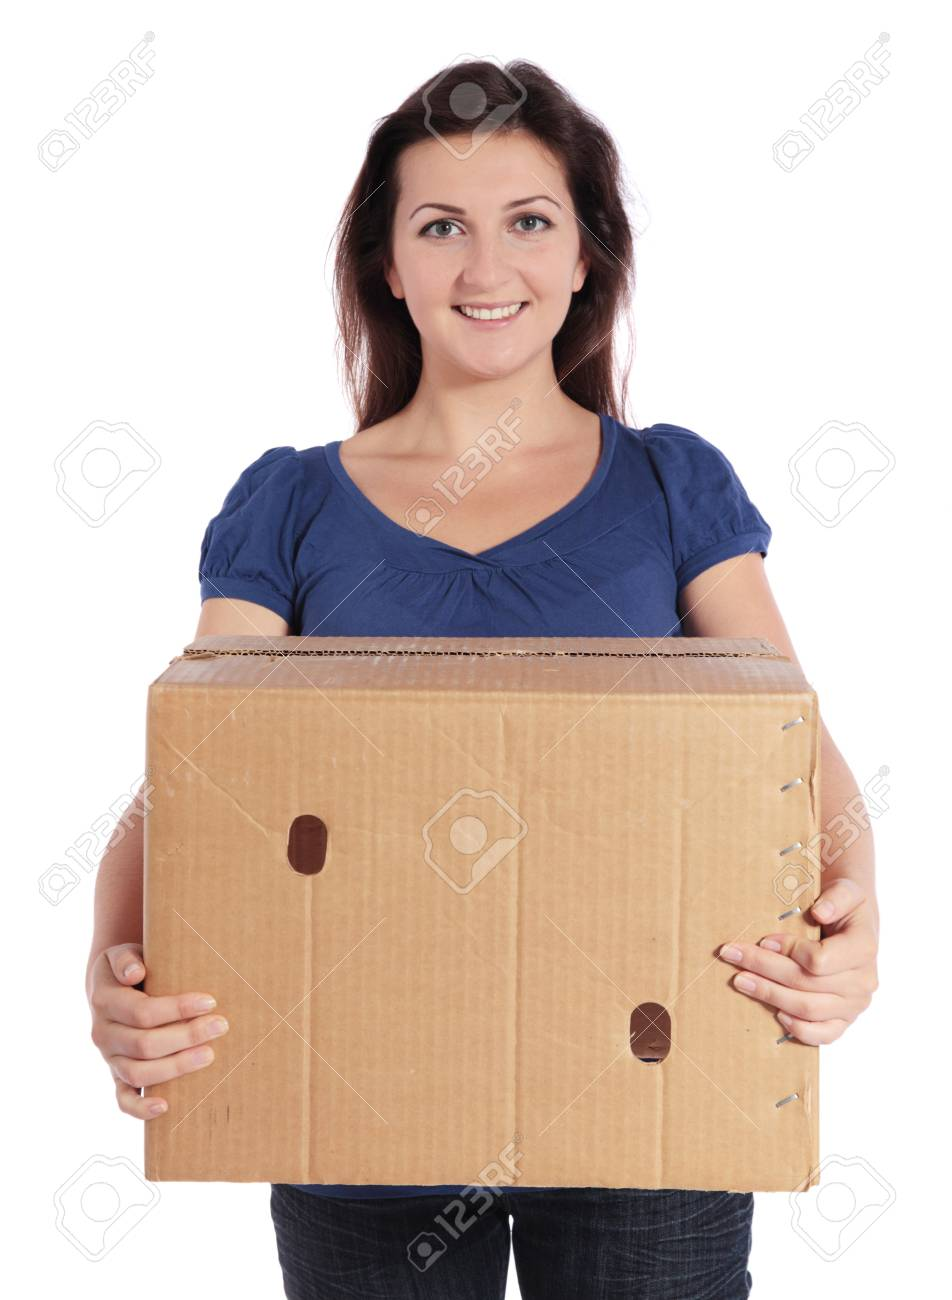 Attractive young woman carrying a moving box Stock Photo - 7864922